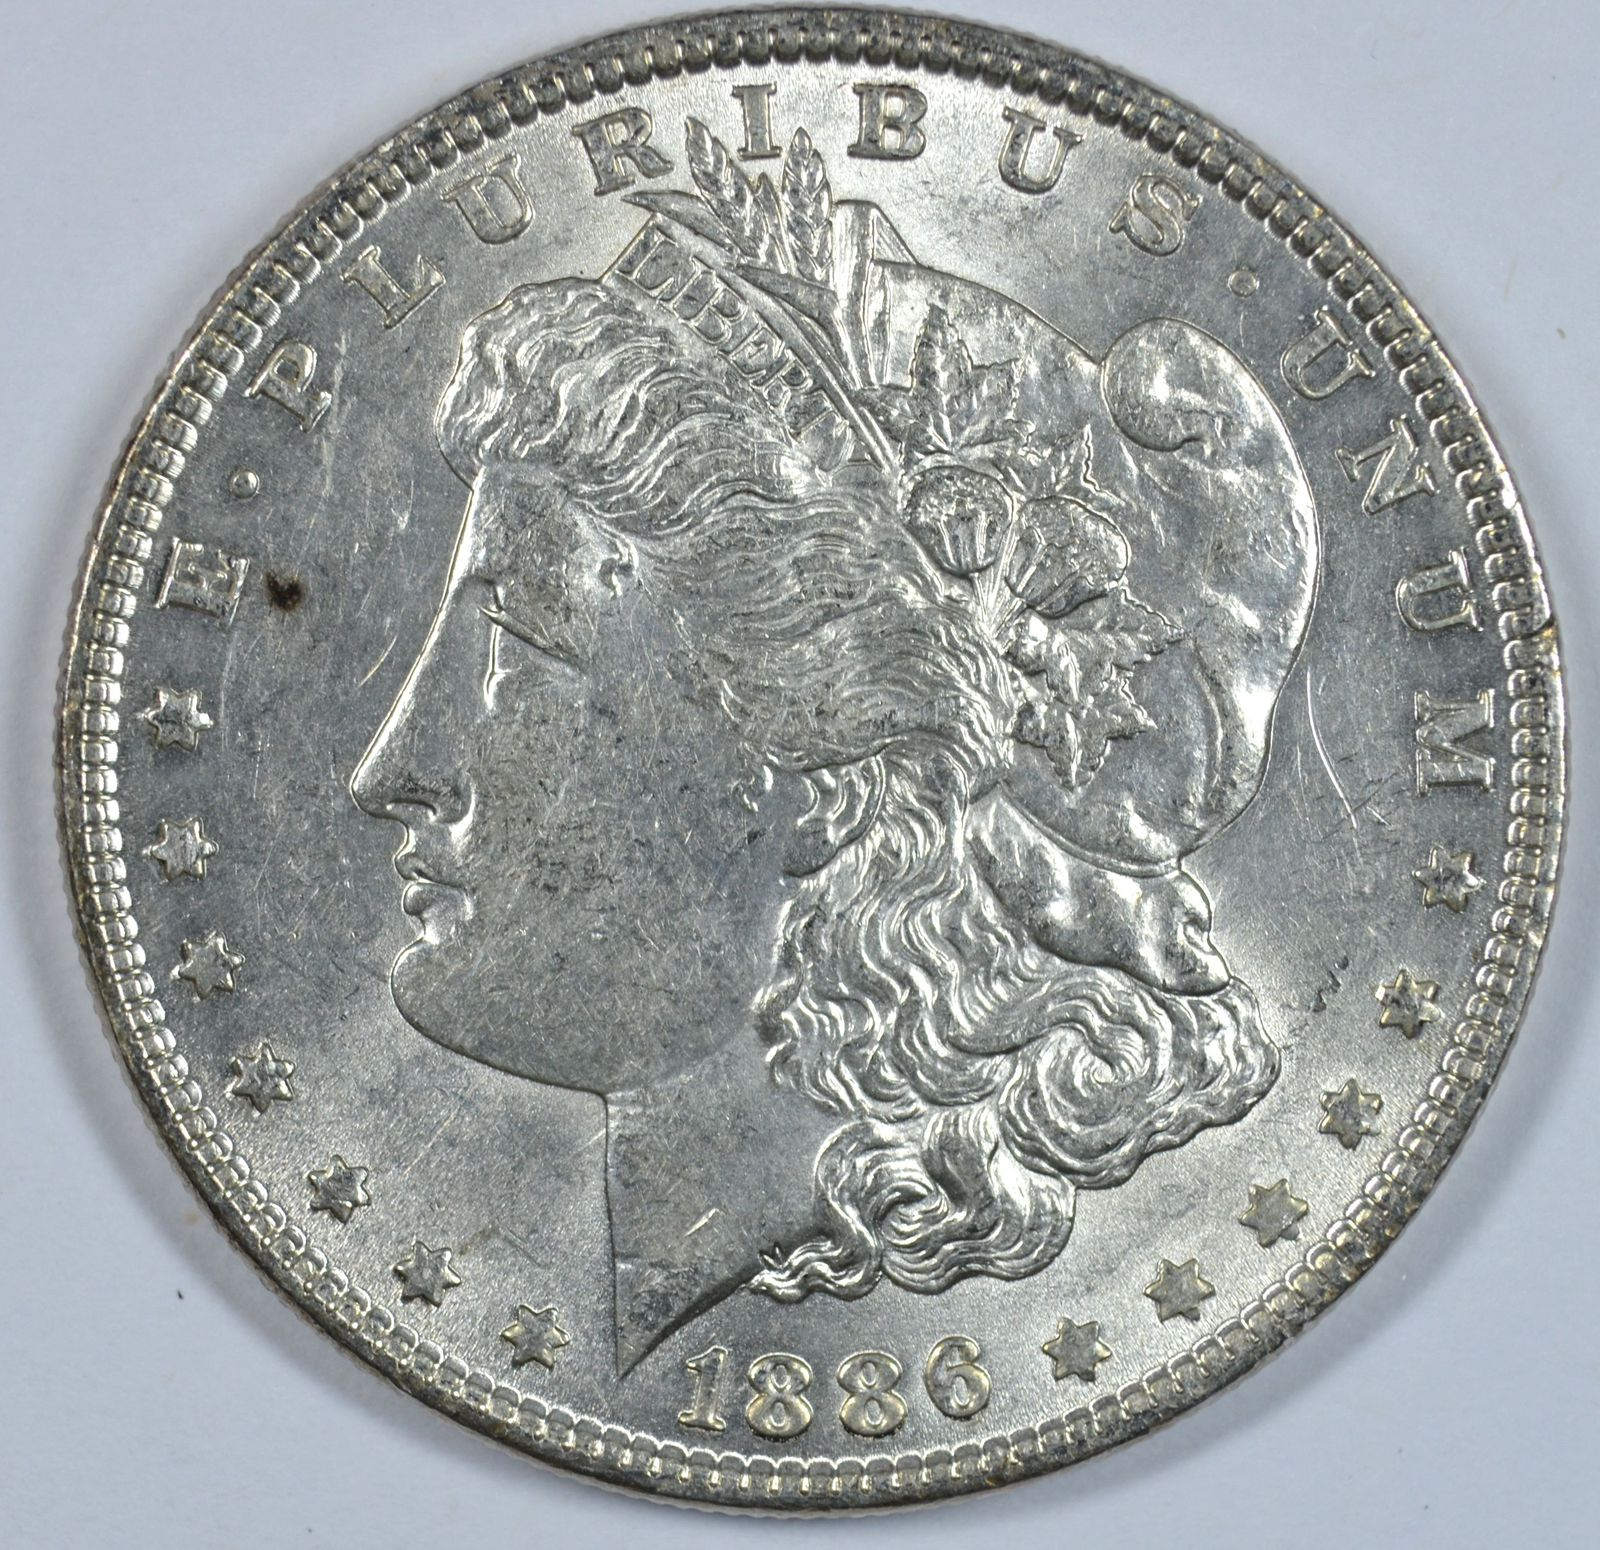 Primary image for 1886 P Morgan silver dollar AU details